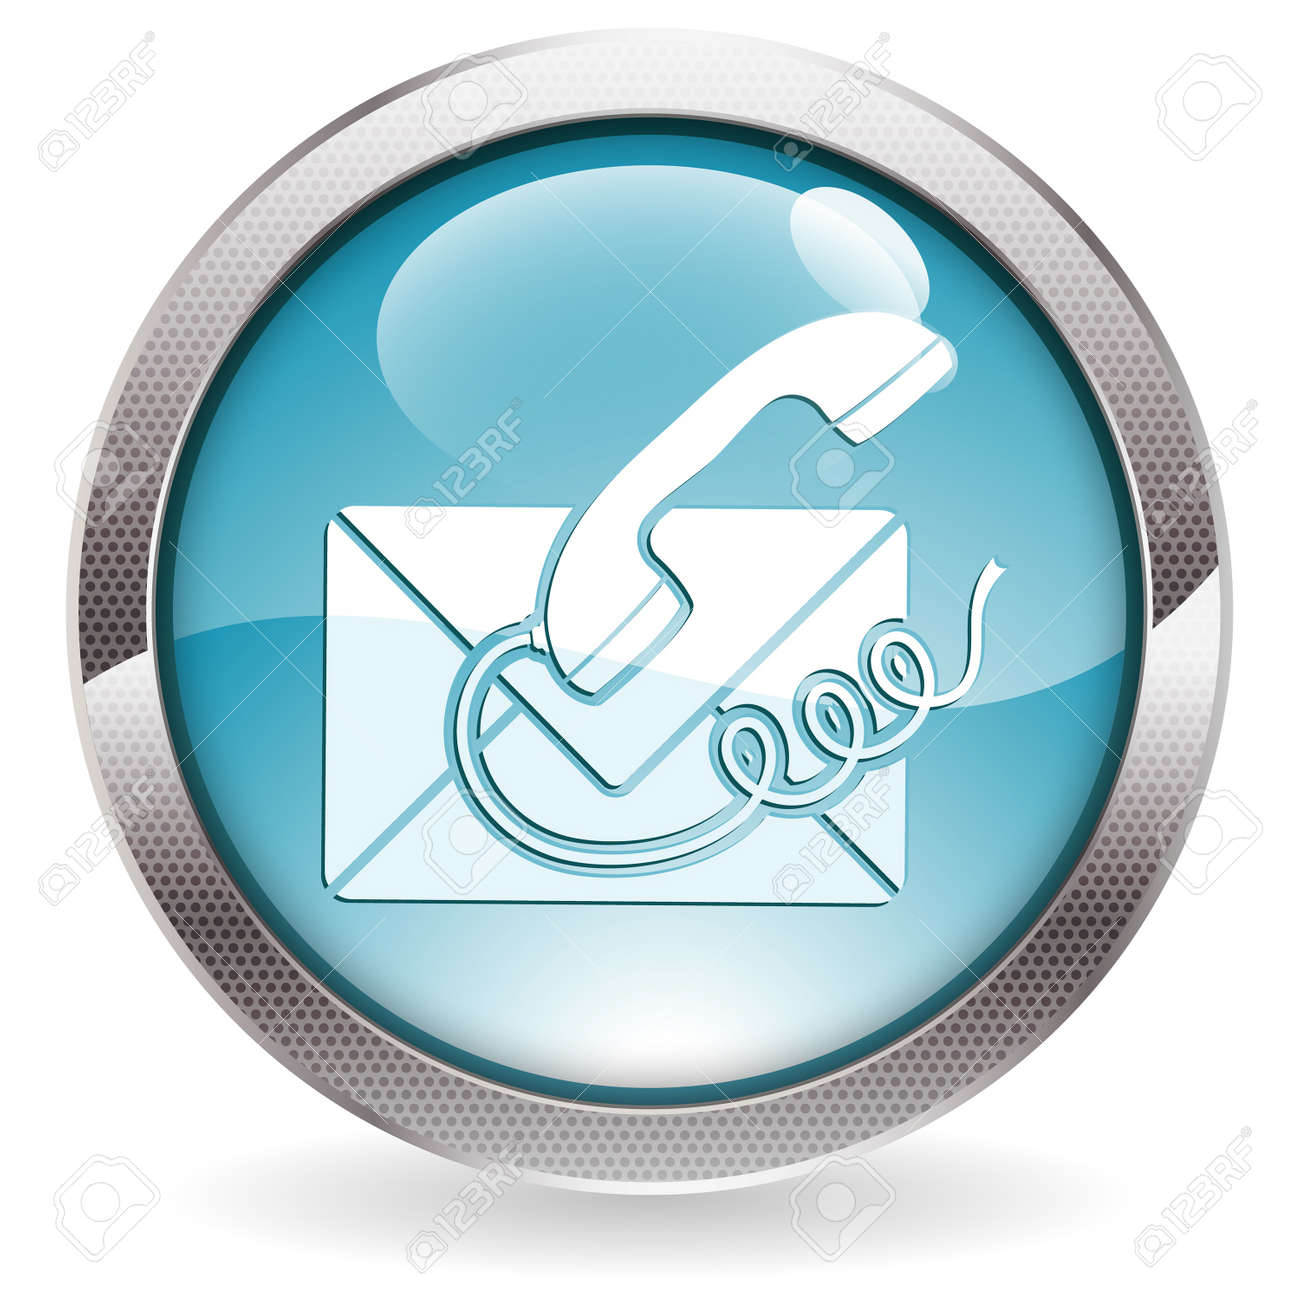 Circle Button with Telephone and Envelope Icon Contact Us, vector illustration Stock Vector - 14937310